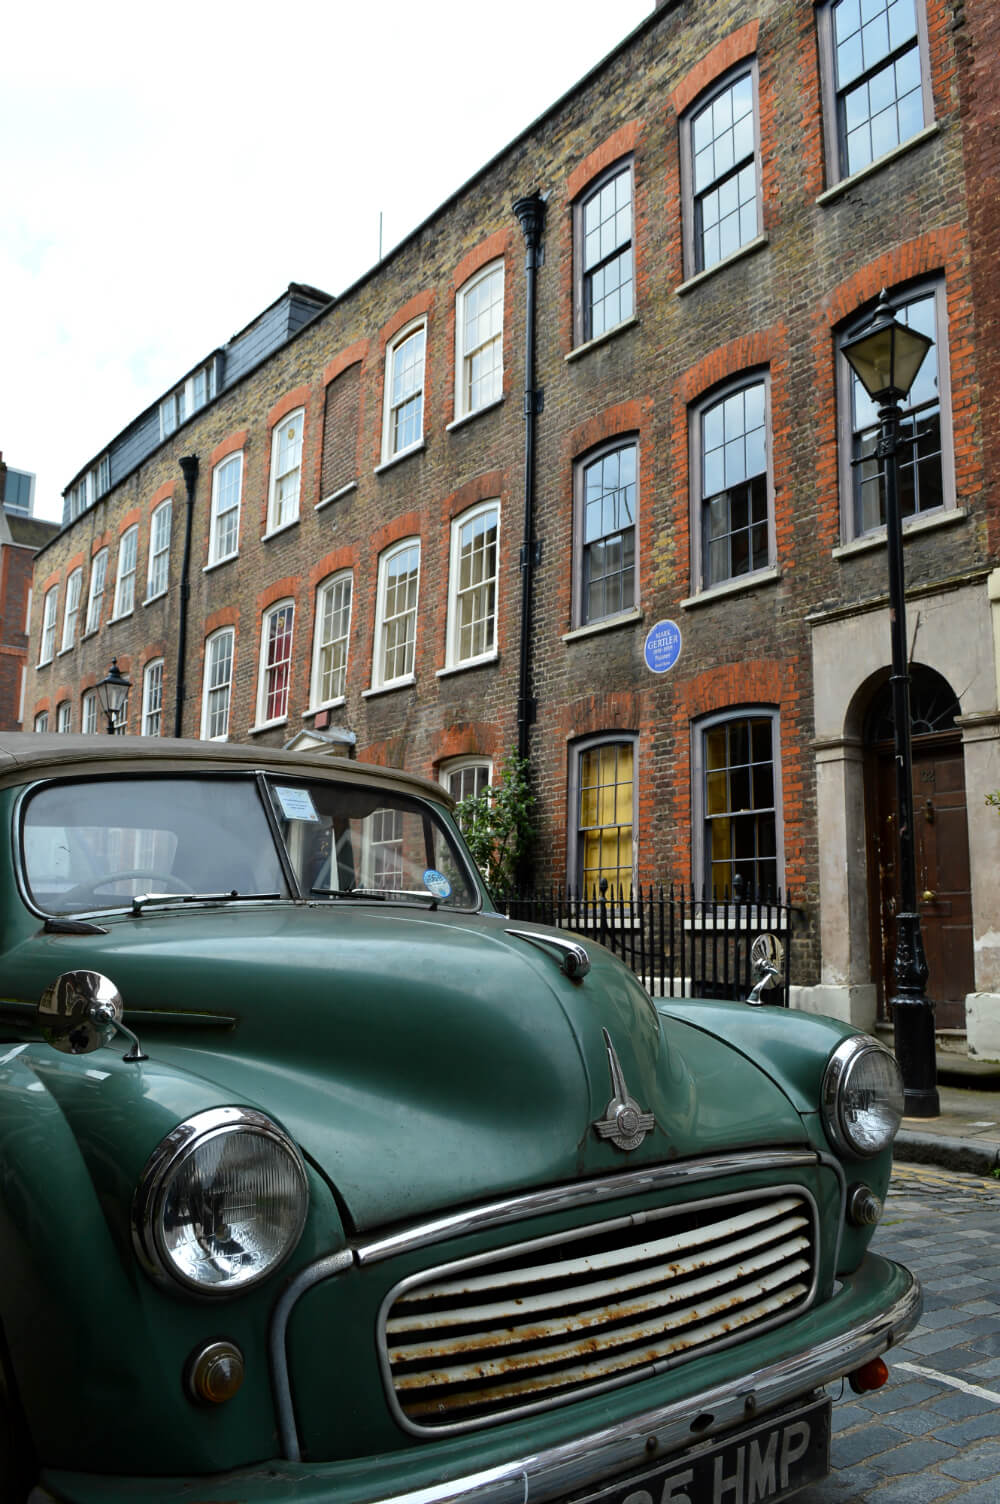 Vintage car in Elder Street, Spitalfields, London